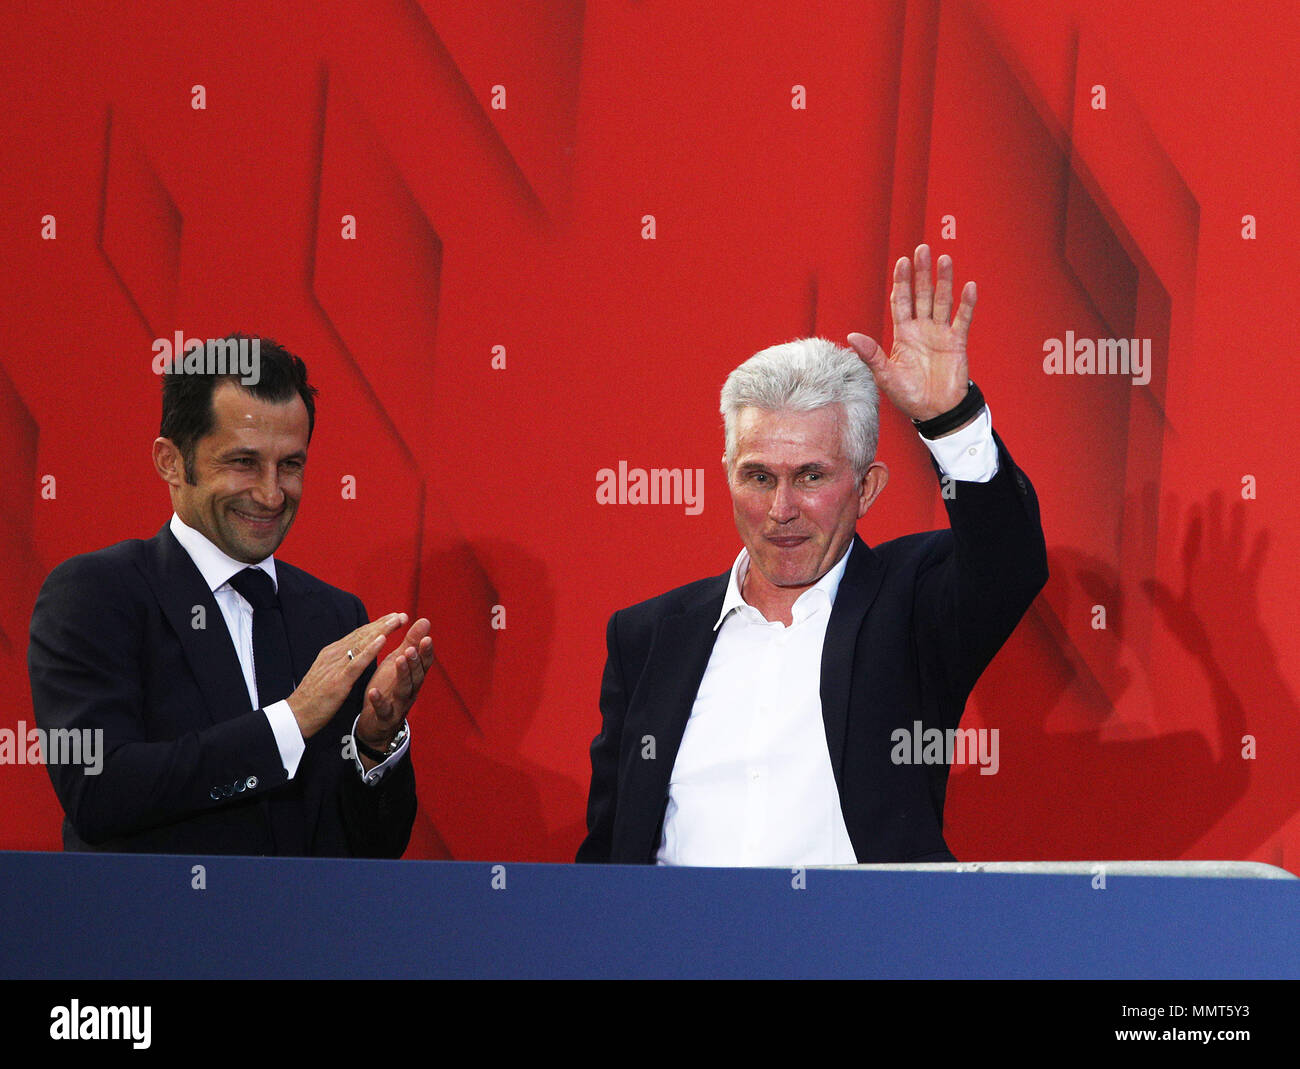 HANDOUT - 12 May 2018, Germany, Munich: Jupp Heynckes (R), coach of FC Bayern Munich, and sporting director Hasan Salihamidzic celebrate winning the championship together with the fans at the Paulaner beer garden at the Nockherberg. Earlier though, a home defeat dampened the joy over the 28th championship title. Photo: Adam Pretty/FCB/Getty Images /dpa - ATTENTION: editorial use only and only if the credit mentioned above is referenced in full Credit: dpa picture alliance/Alamy Live News Stock Photo